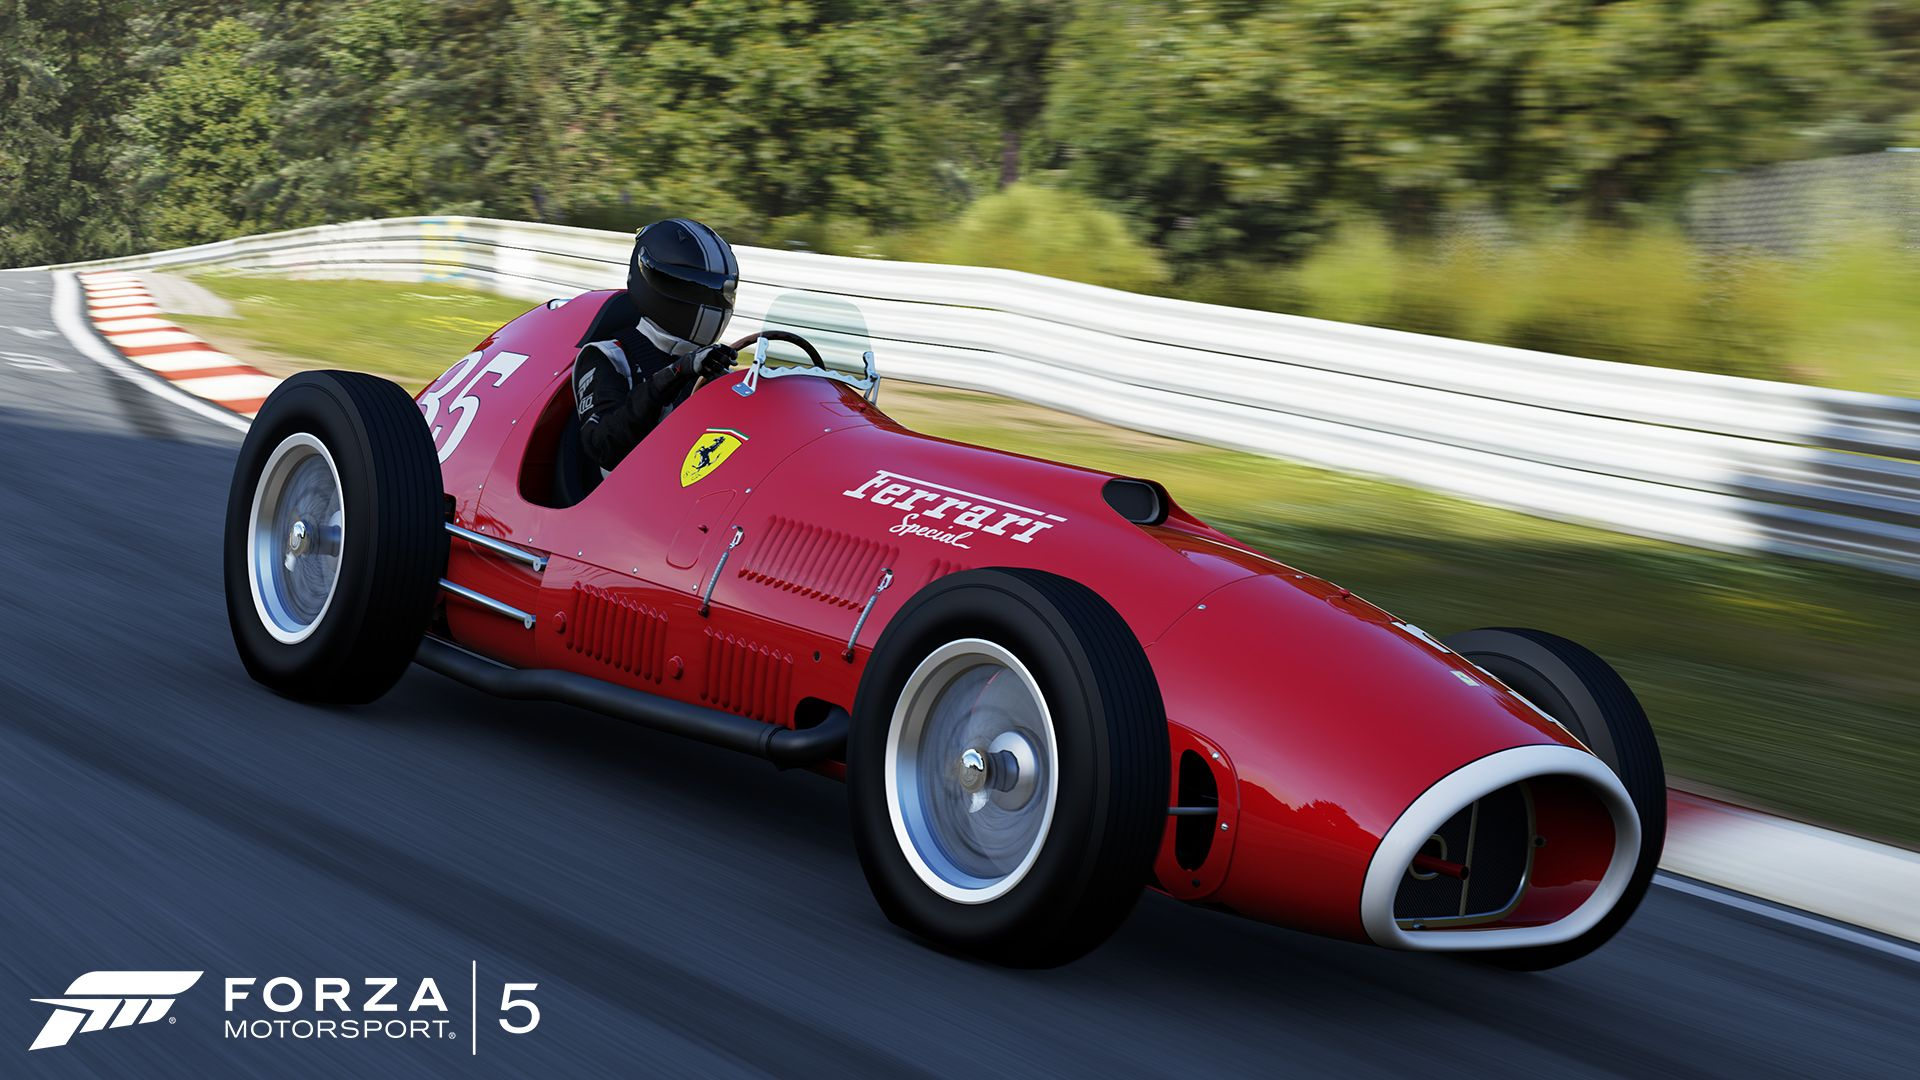 6df6d9dd78274e6bd3fd9071be4a461b Elegant Ferrari F 108 Al-mondial 8 Cars Trend